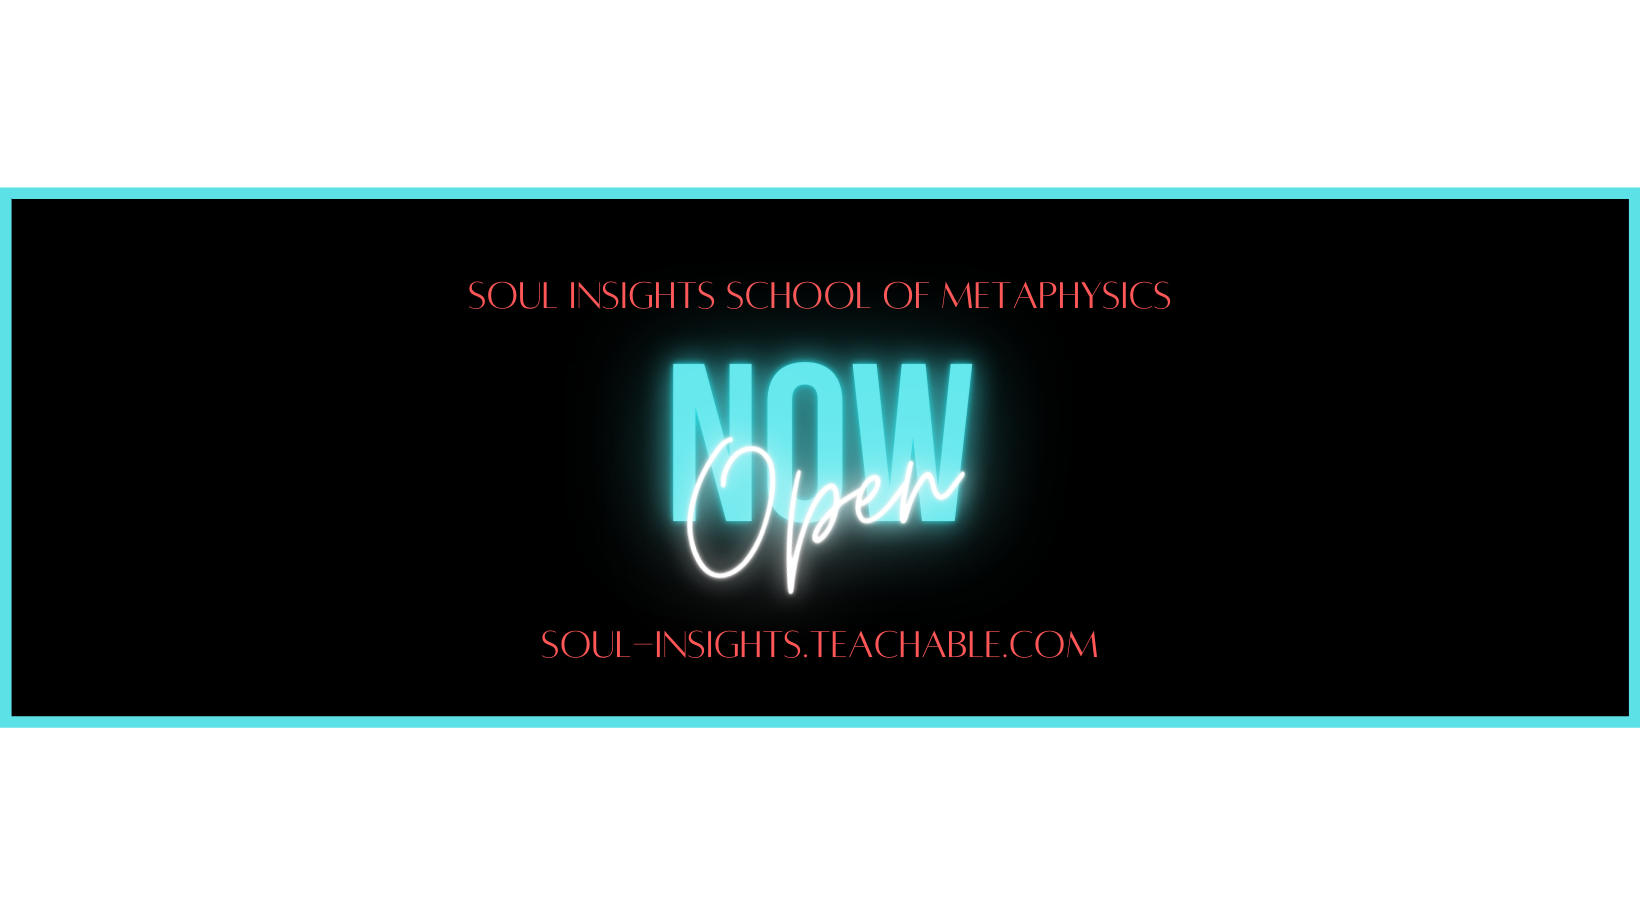 Soul Insights School of Metaphysics Now Open